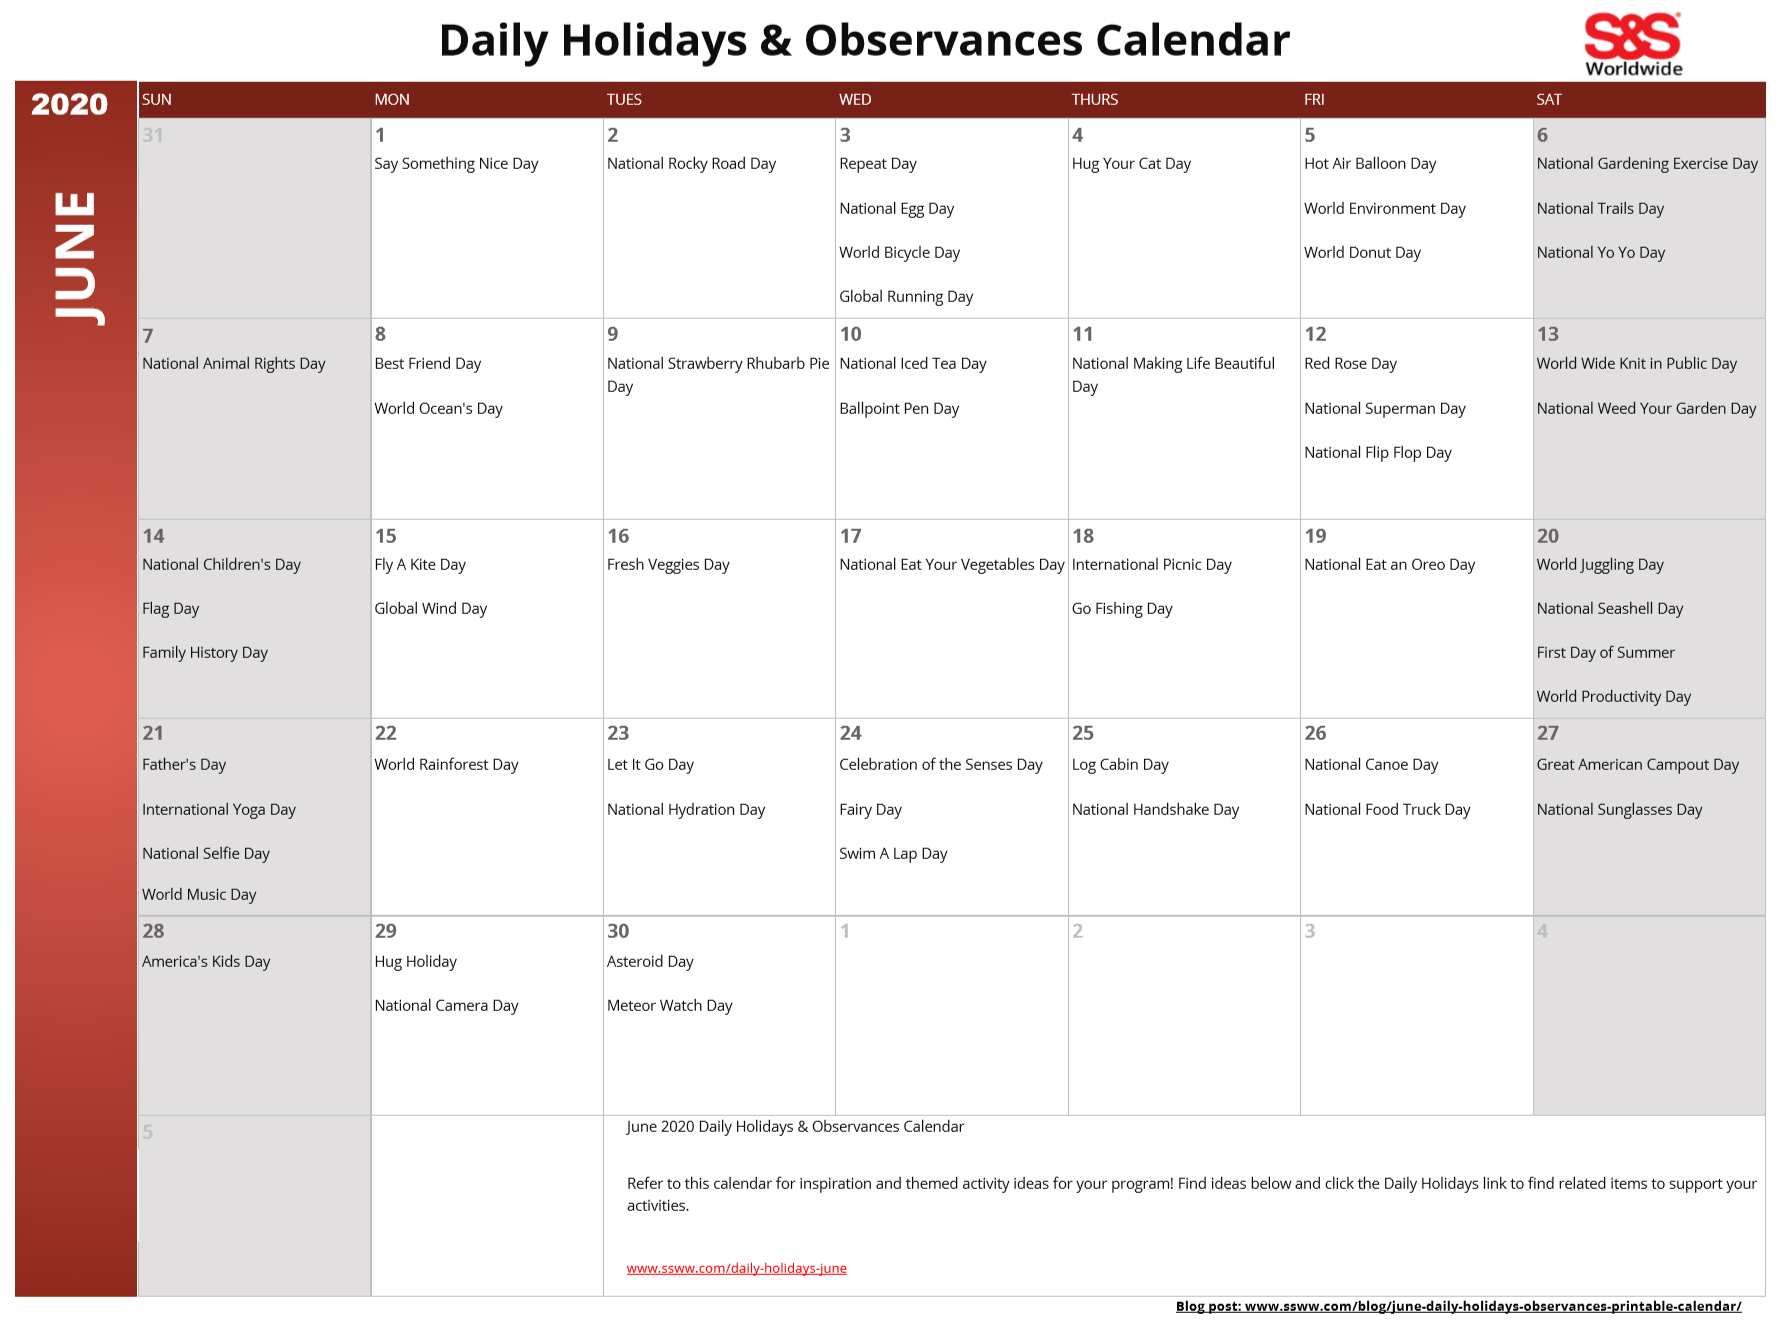 June 2020 Printable Daily Holidays Calendar